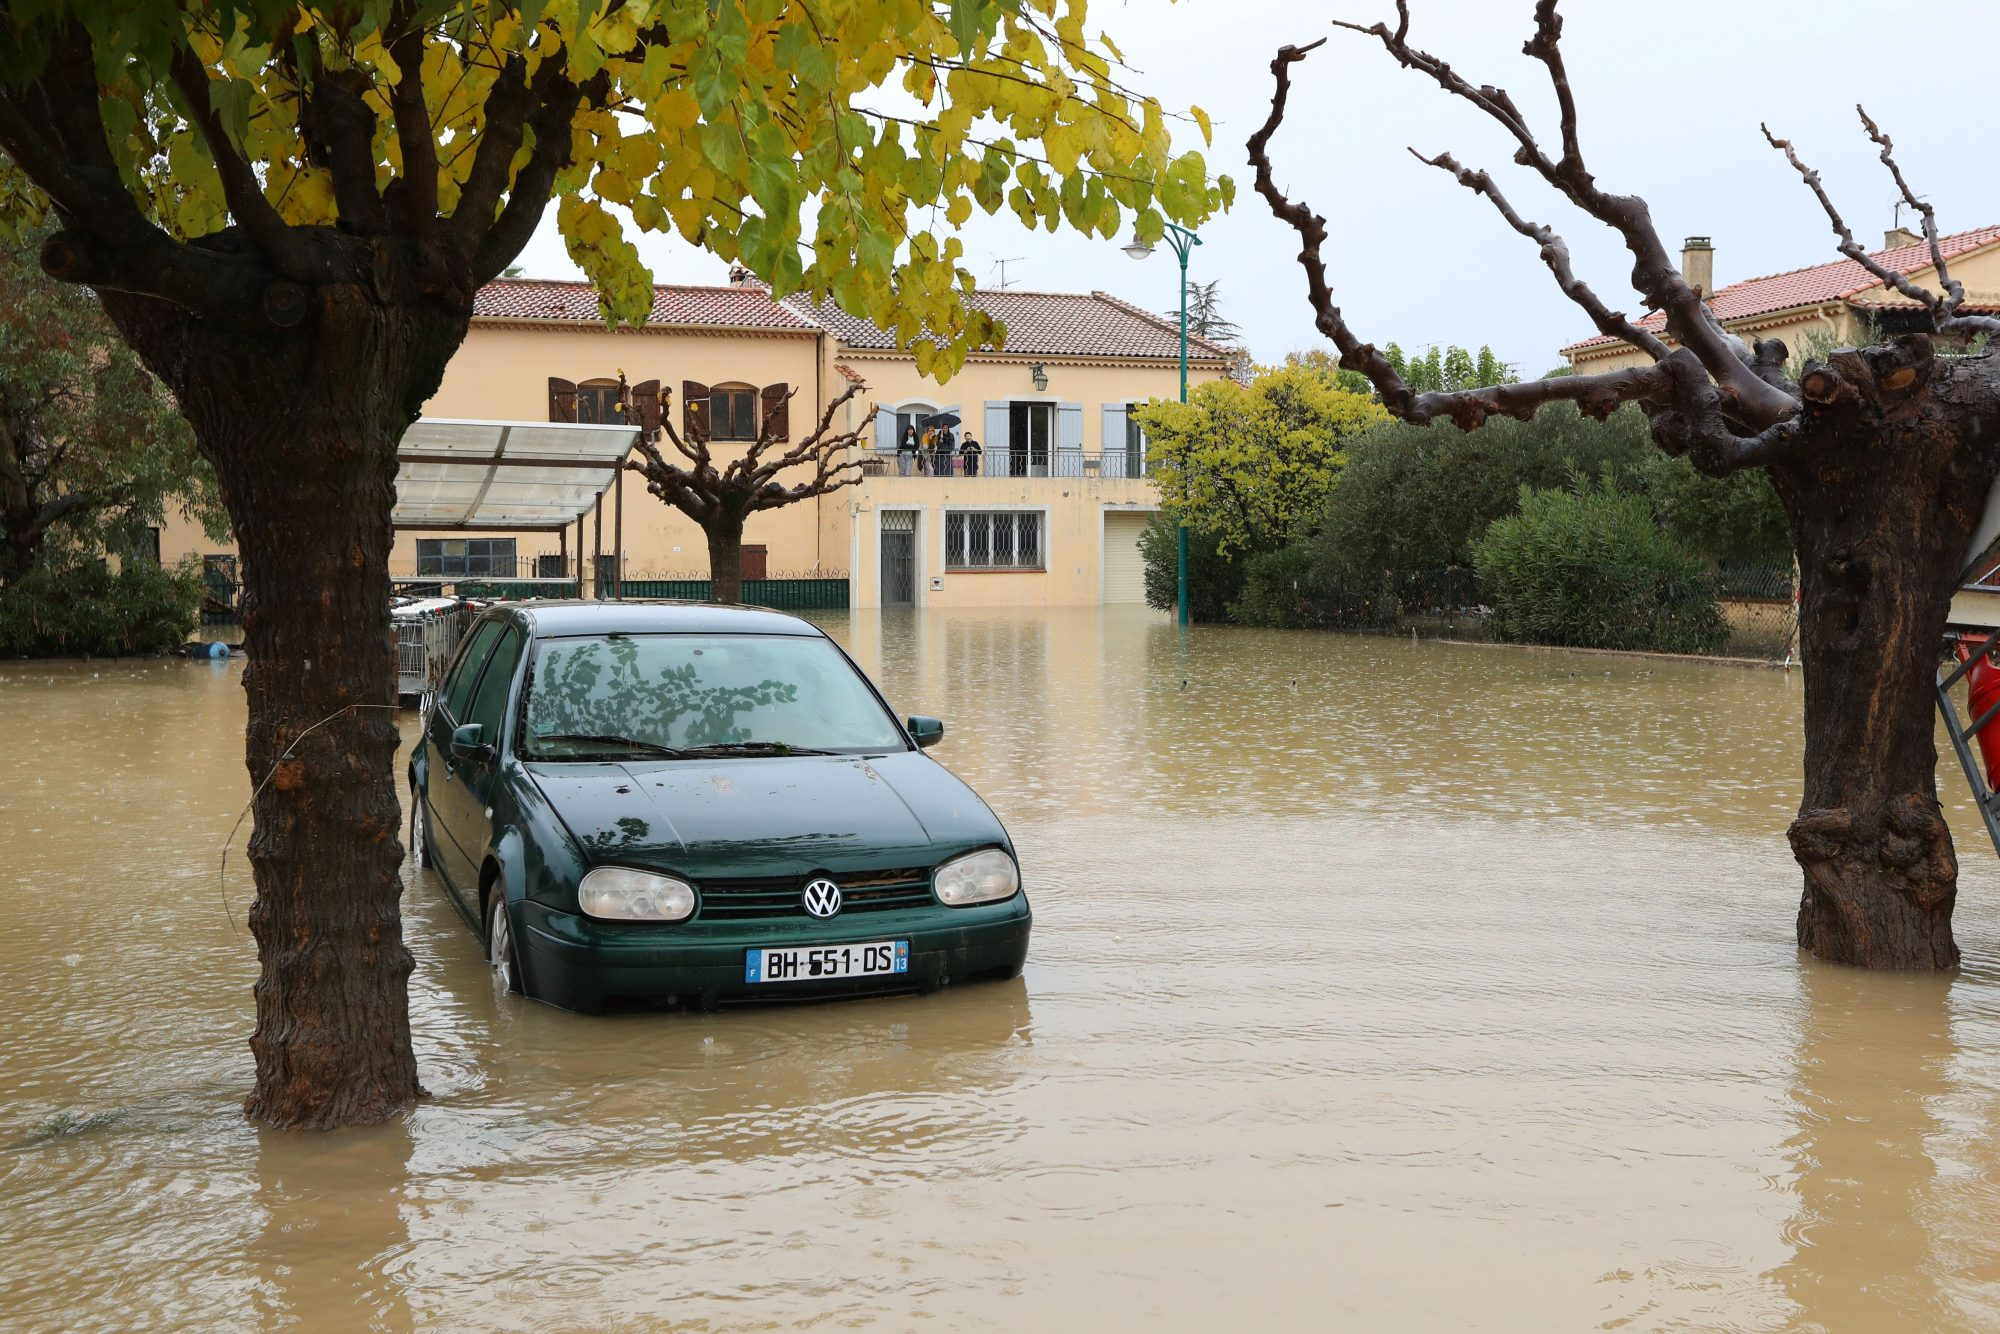 Floods in France